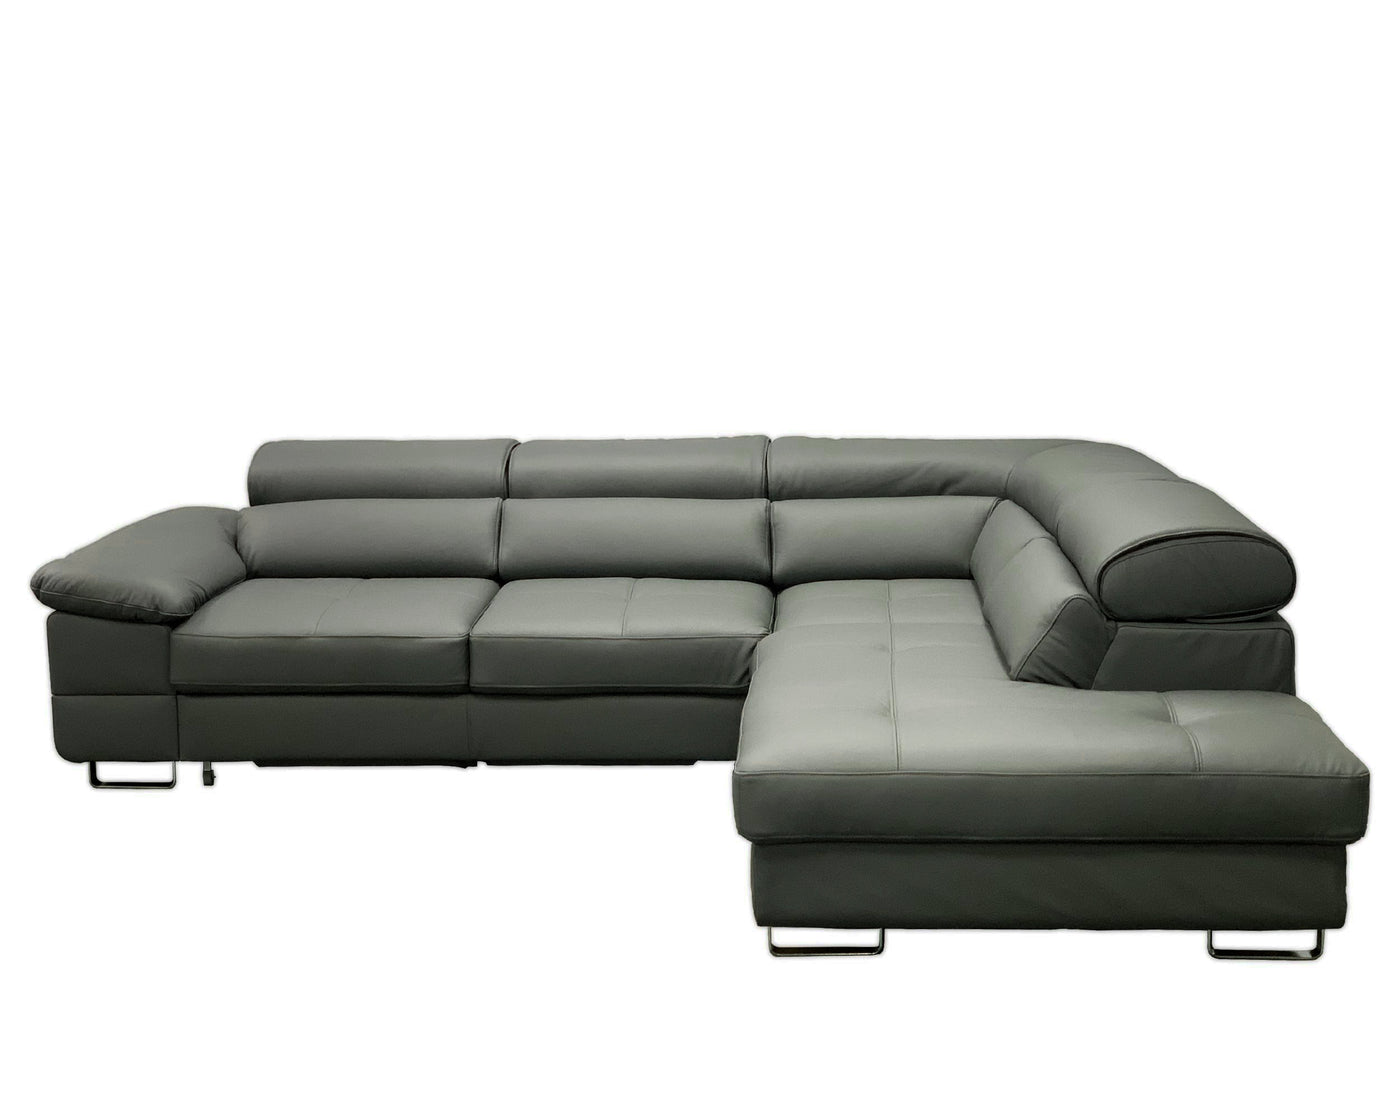 Enjoyable Costa Leather Sectional Sleeper Sofa Right Corner Pdpeps Interior Chair Design Pdpepsorg